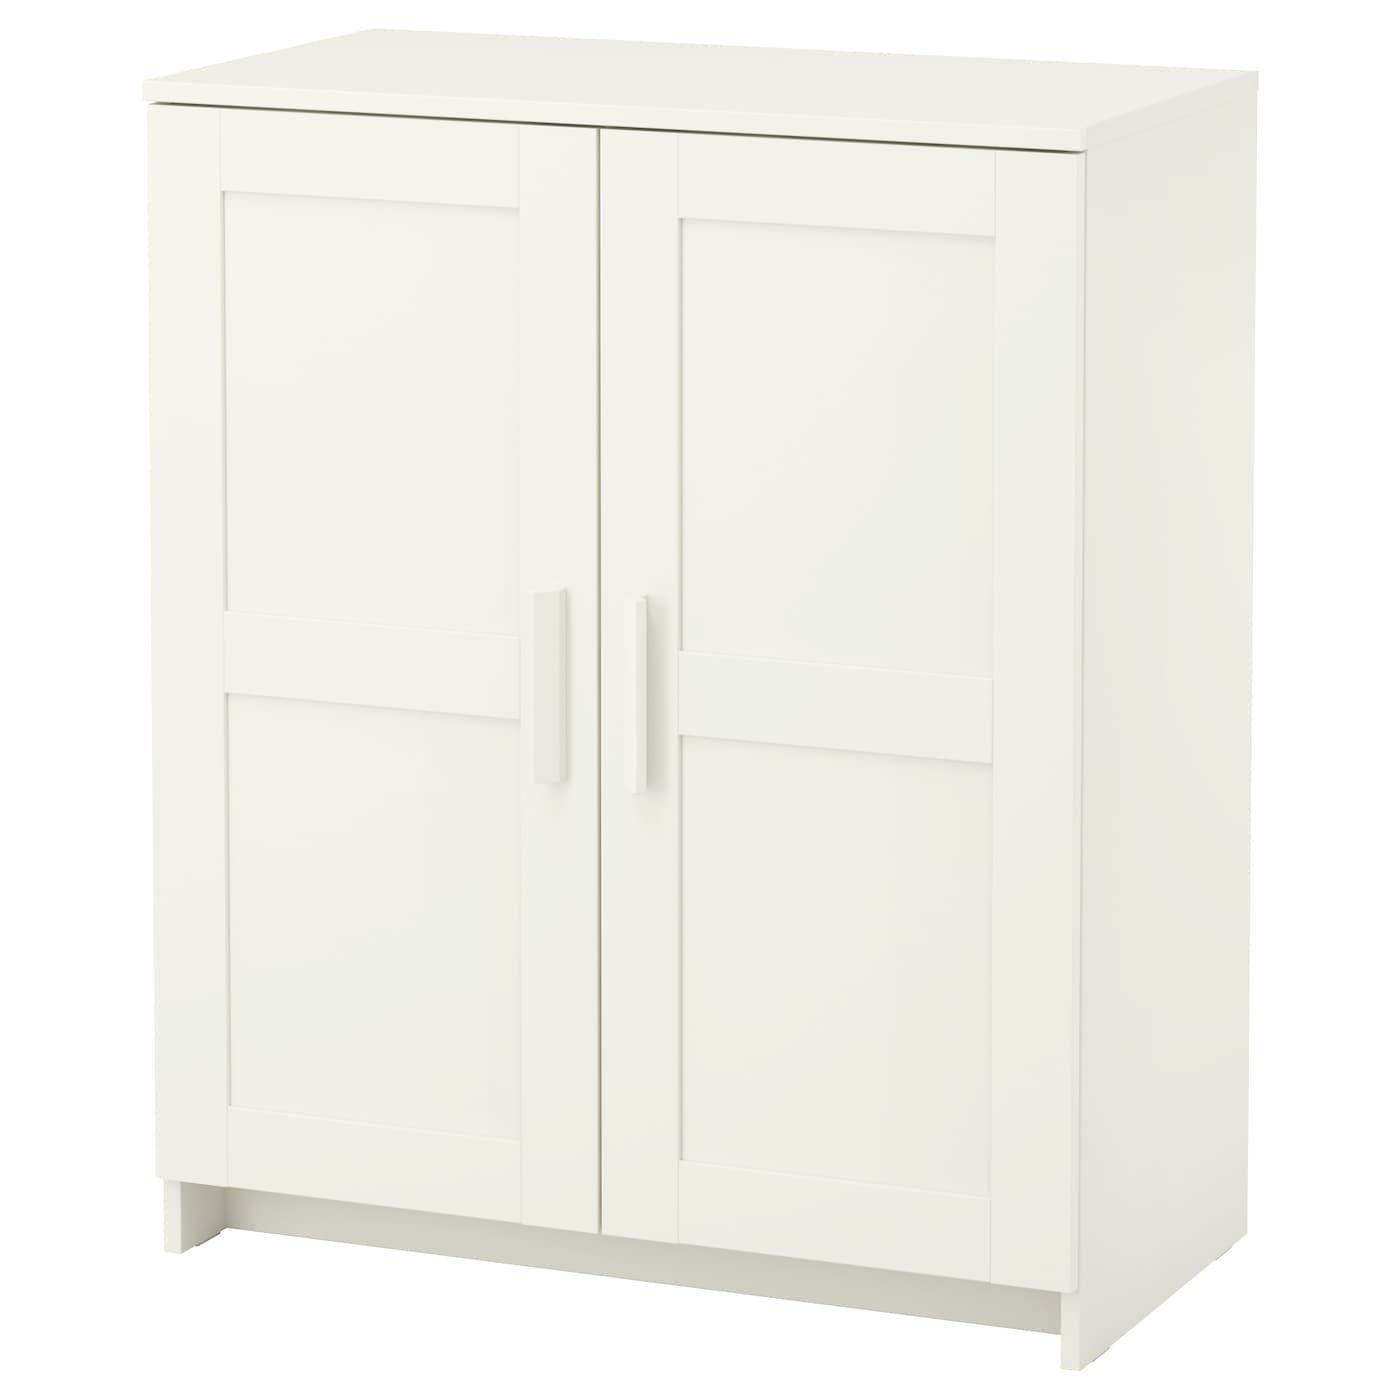 storage cabinet white brimnes cabinet with doors white 78x95 cm ikea 26825